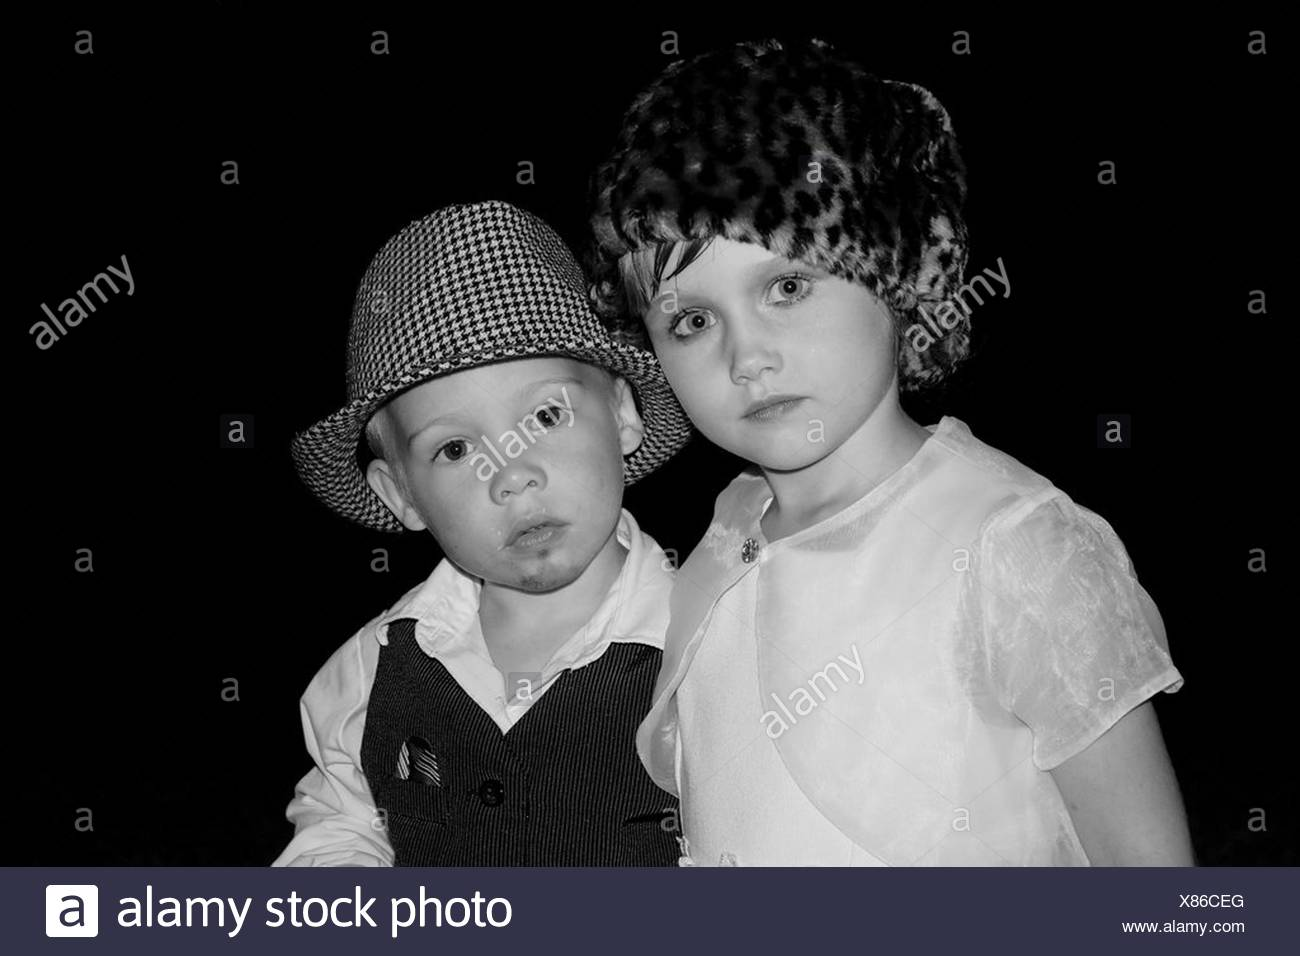 Boy and girl dressed up as couple - Stock Image